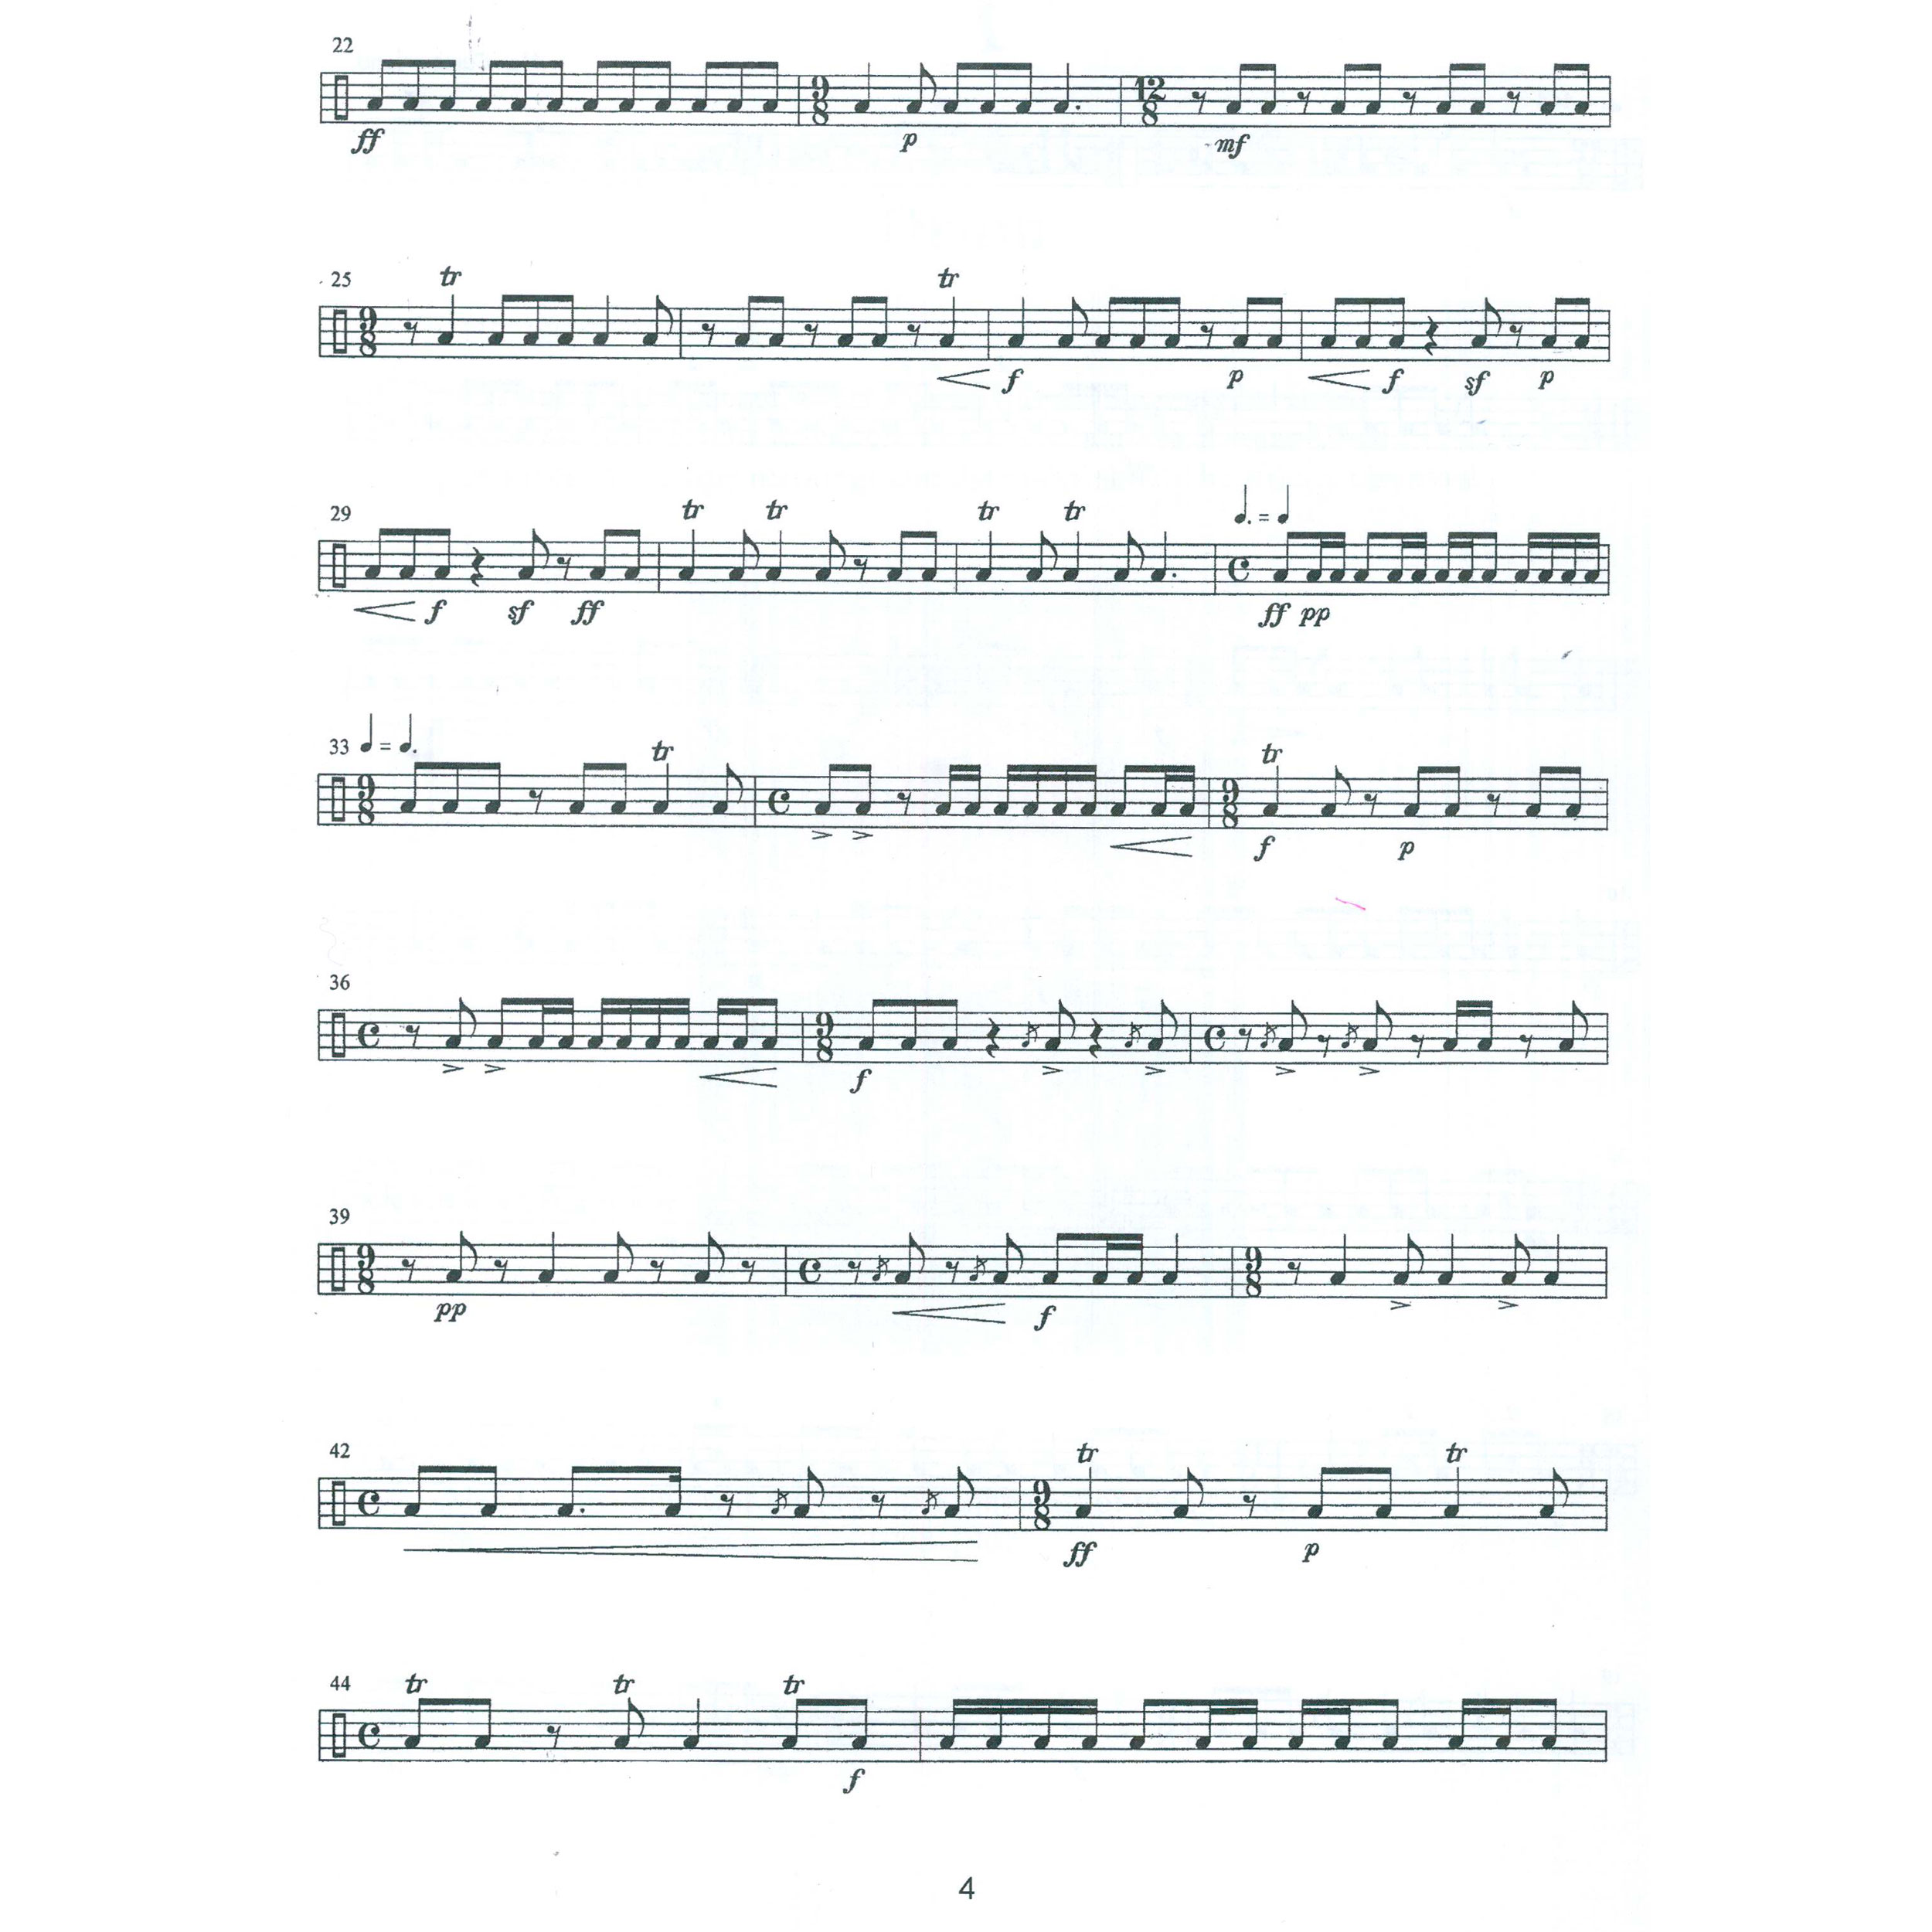 How To Read Sheet Music For Drums Beginners - snare sheet musichow to read drum music theory ...